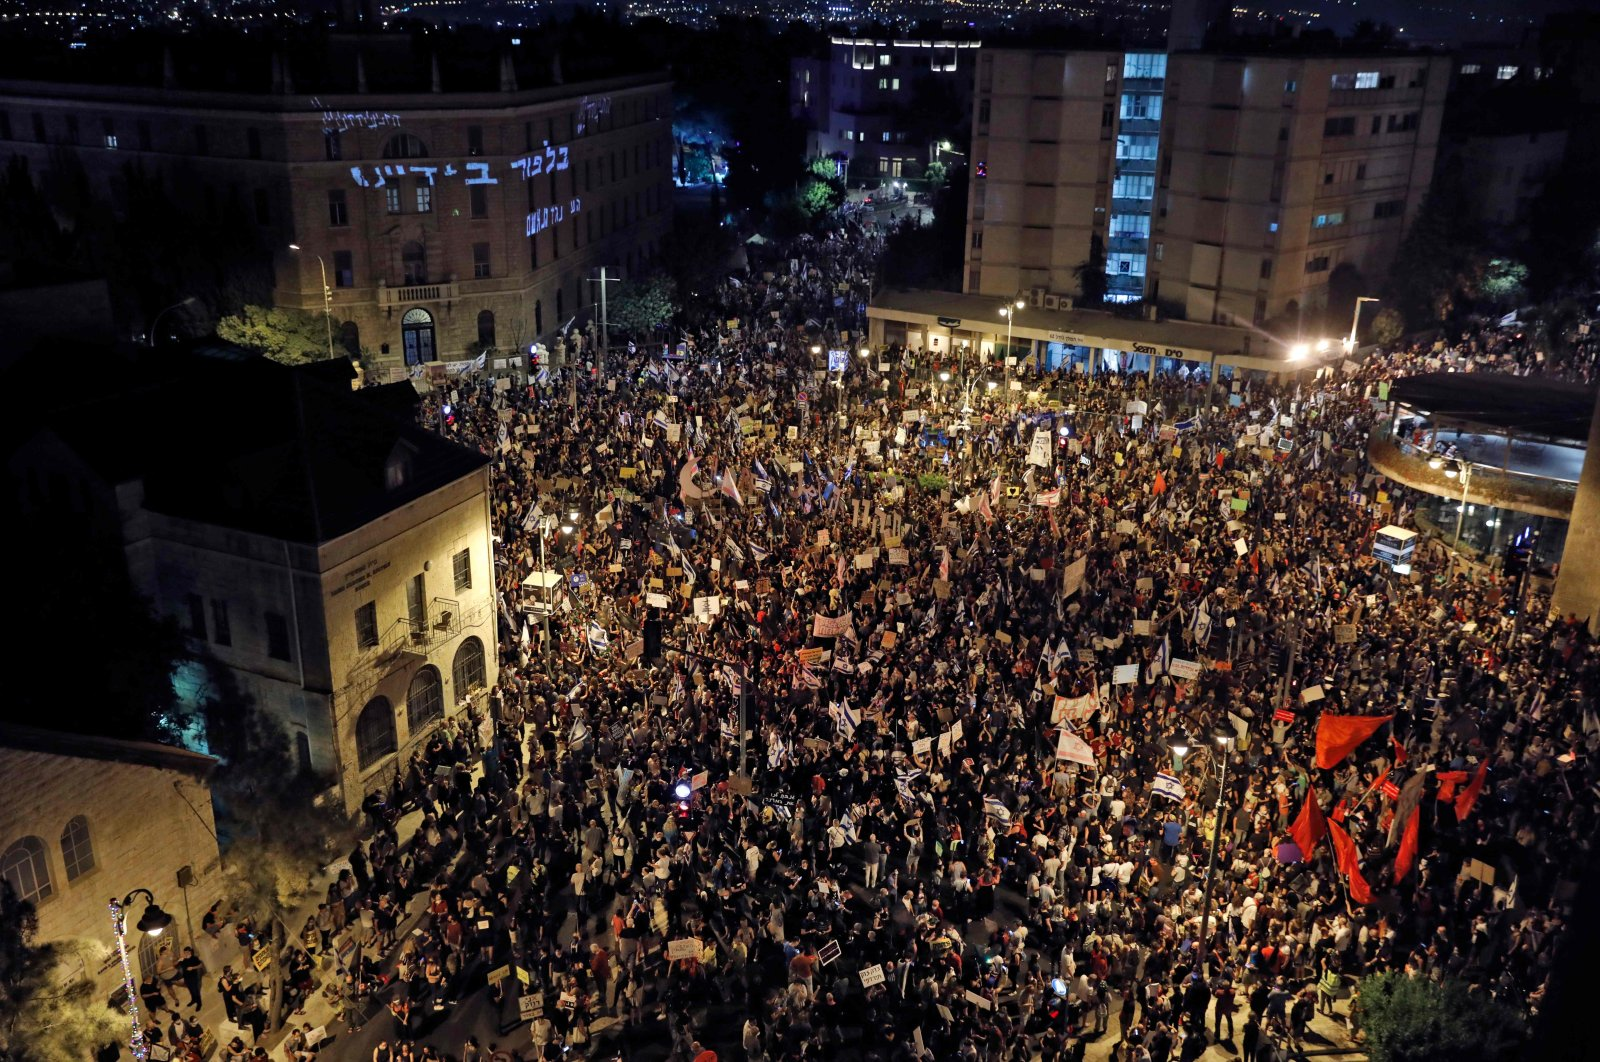 Protesters gather for a demonstration against the Israeli government near the Prime Minister's residence in Jerusalem, Aug. 8, 2020. (AFP Photo)